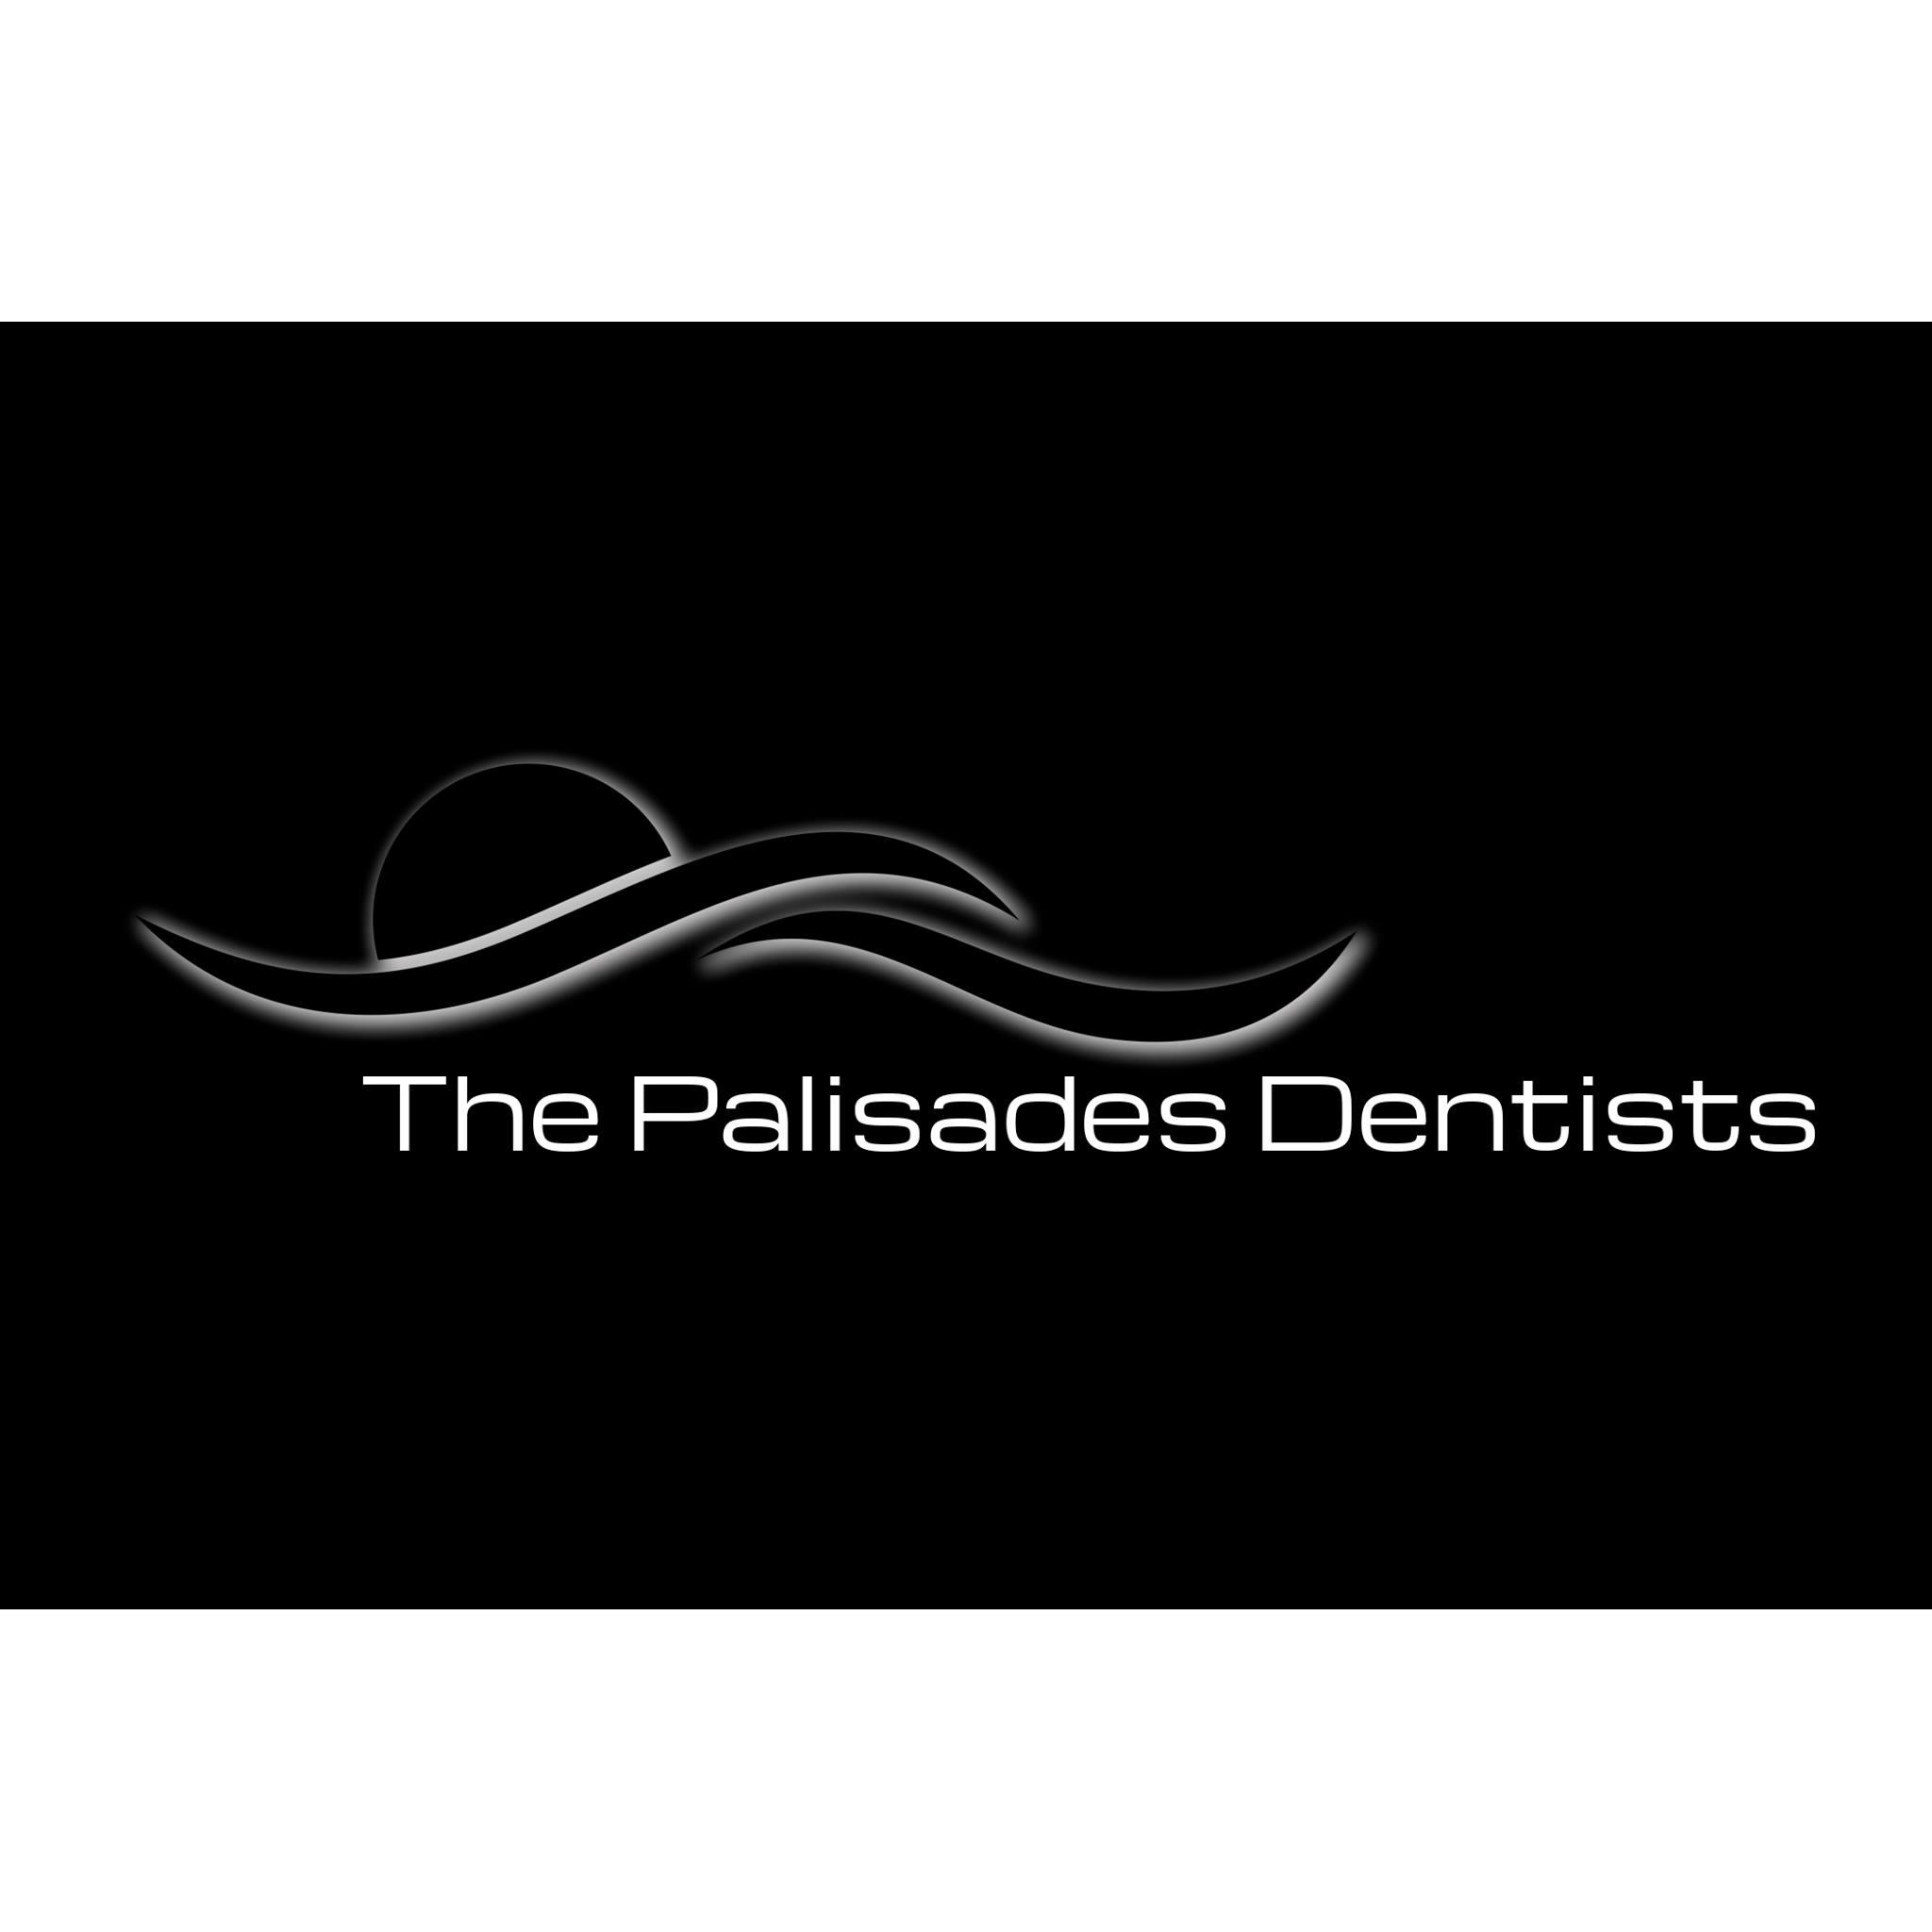 The Palisades Dentists